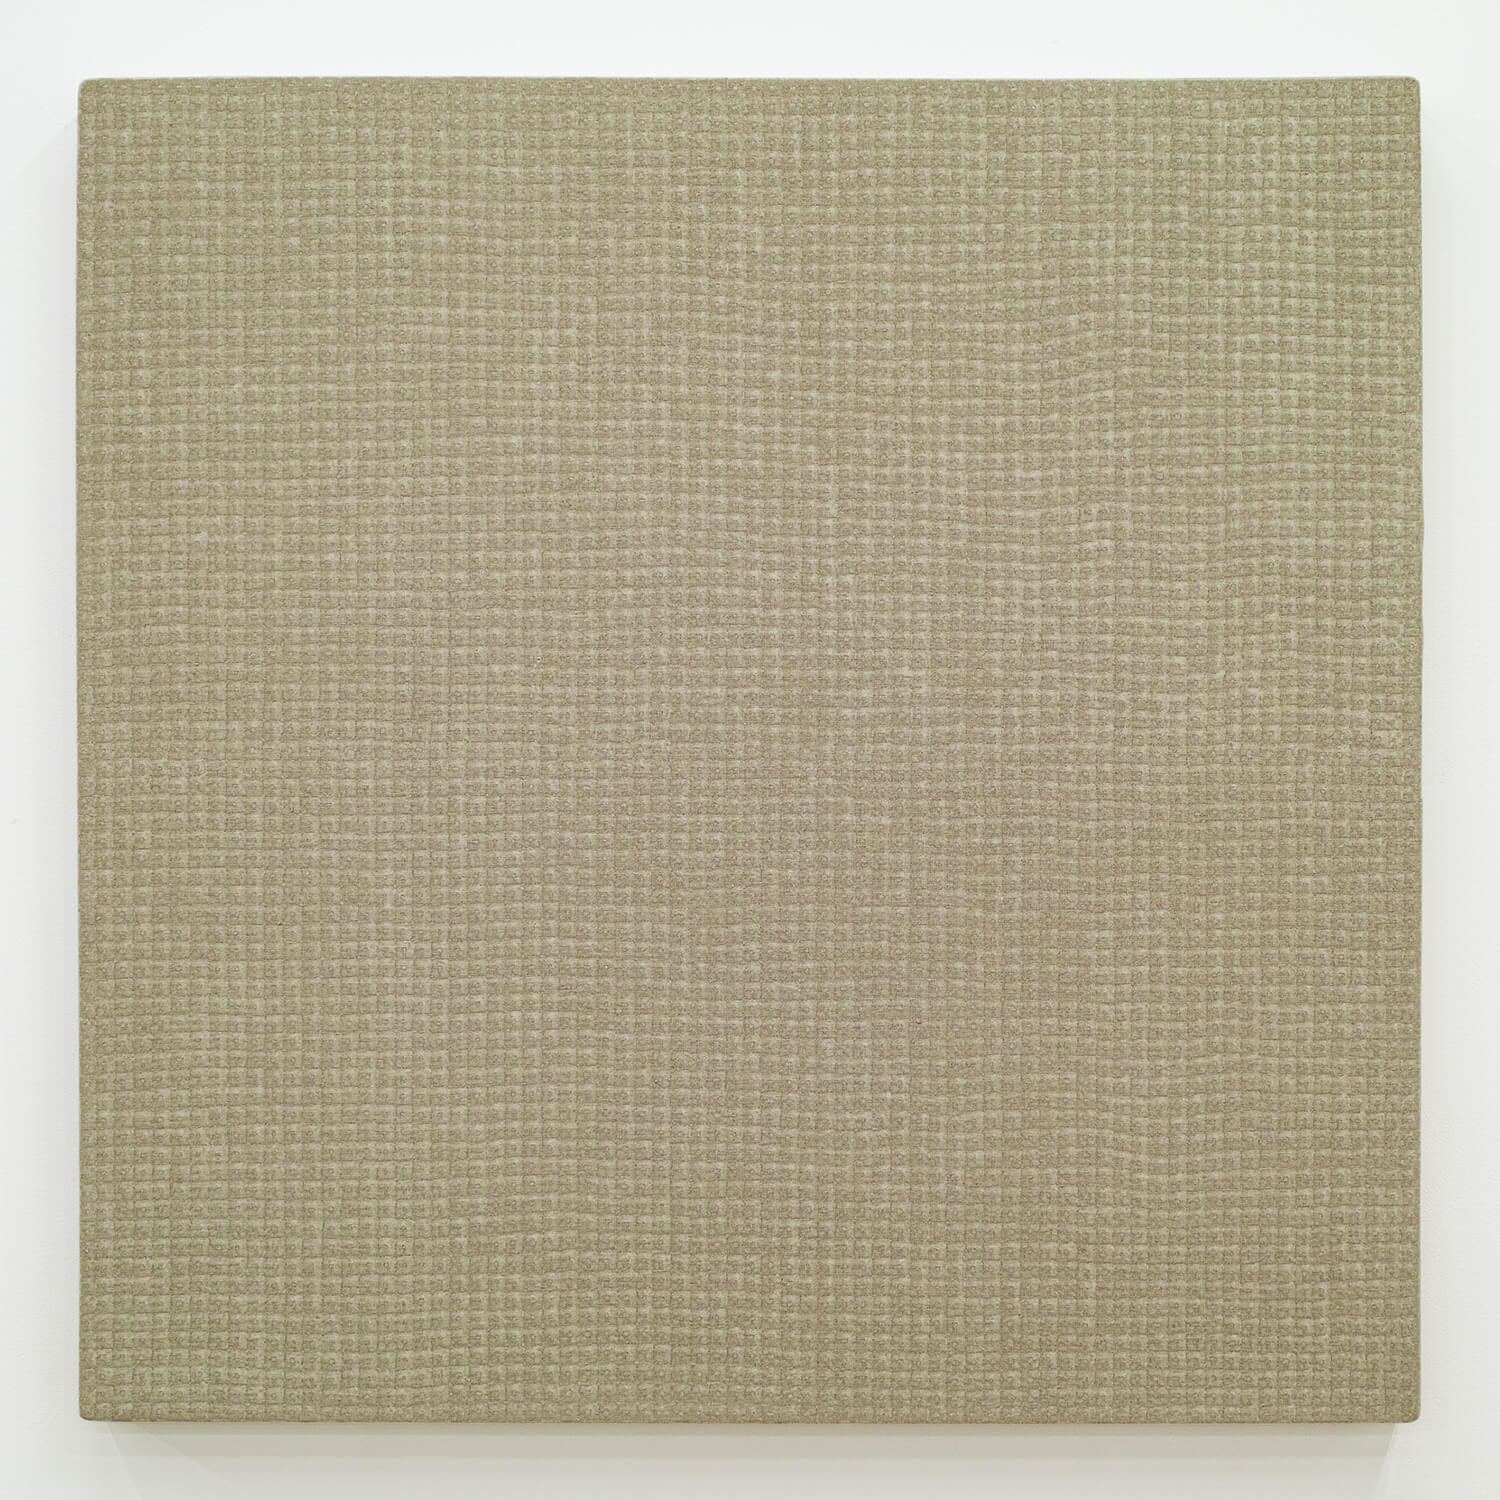 川井昭夫 麻布-square 09-1 Acylic on canvas 72.5 x 72.5 cm 2009